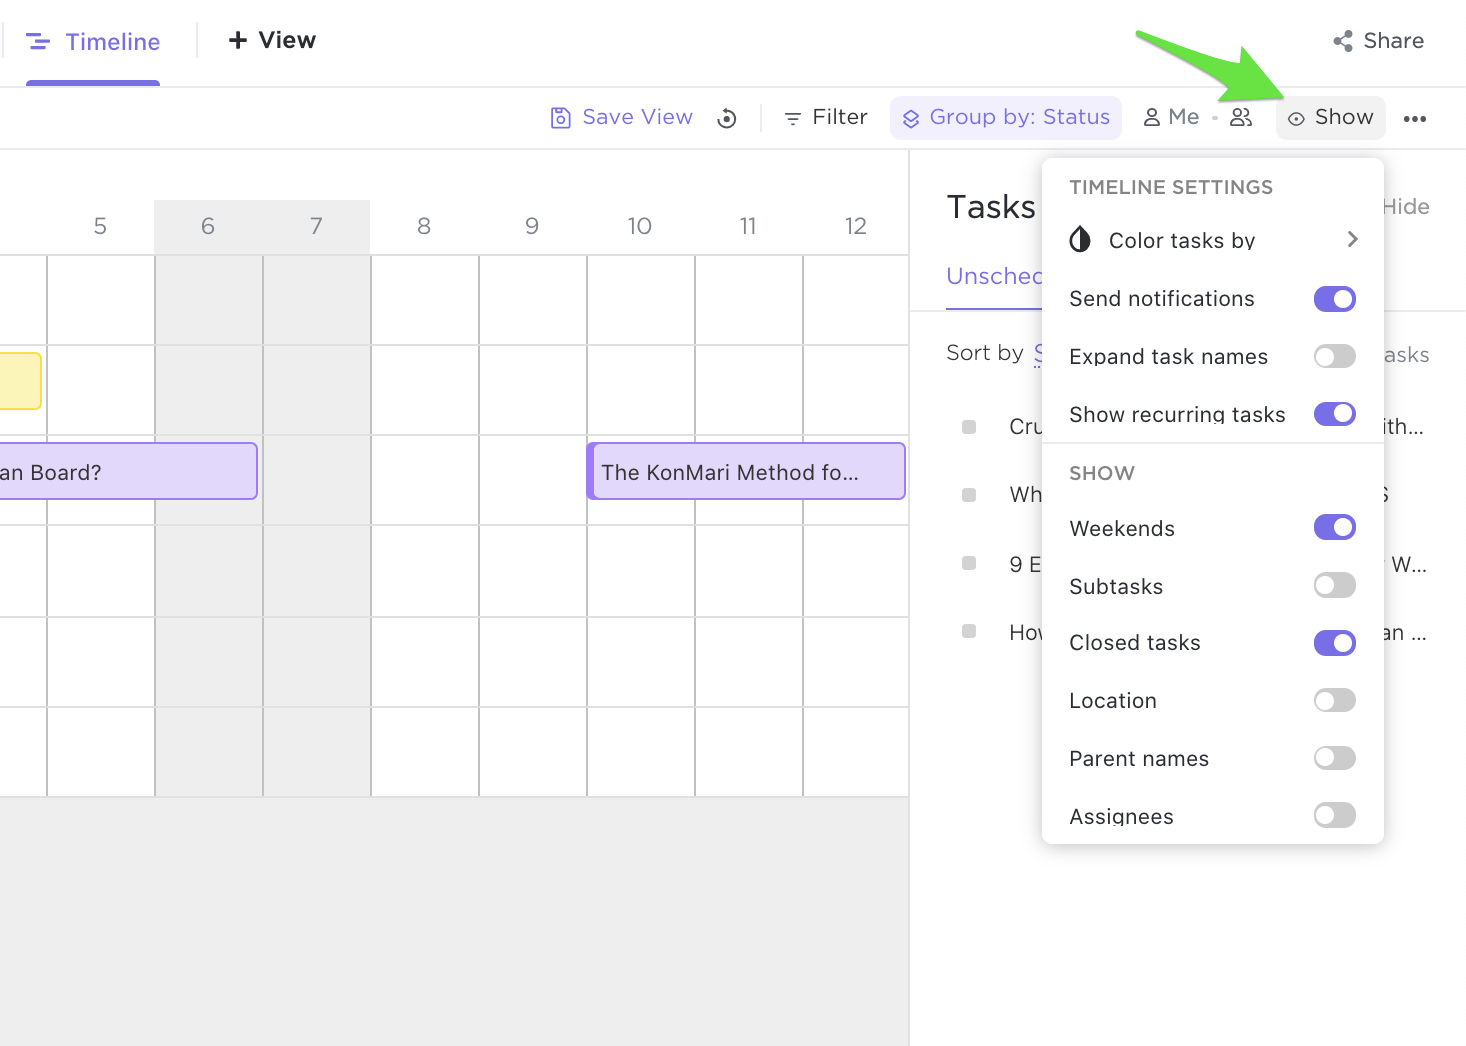 Screenshot of options available to customize the Timeline view